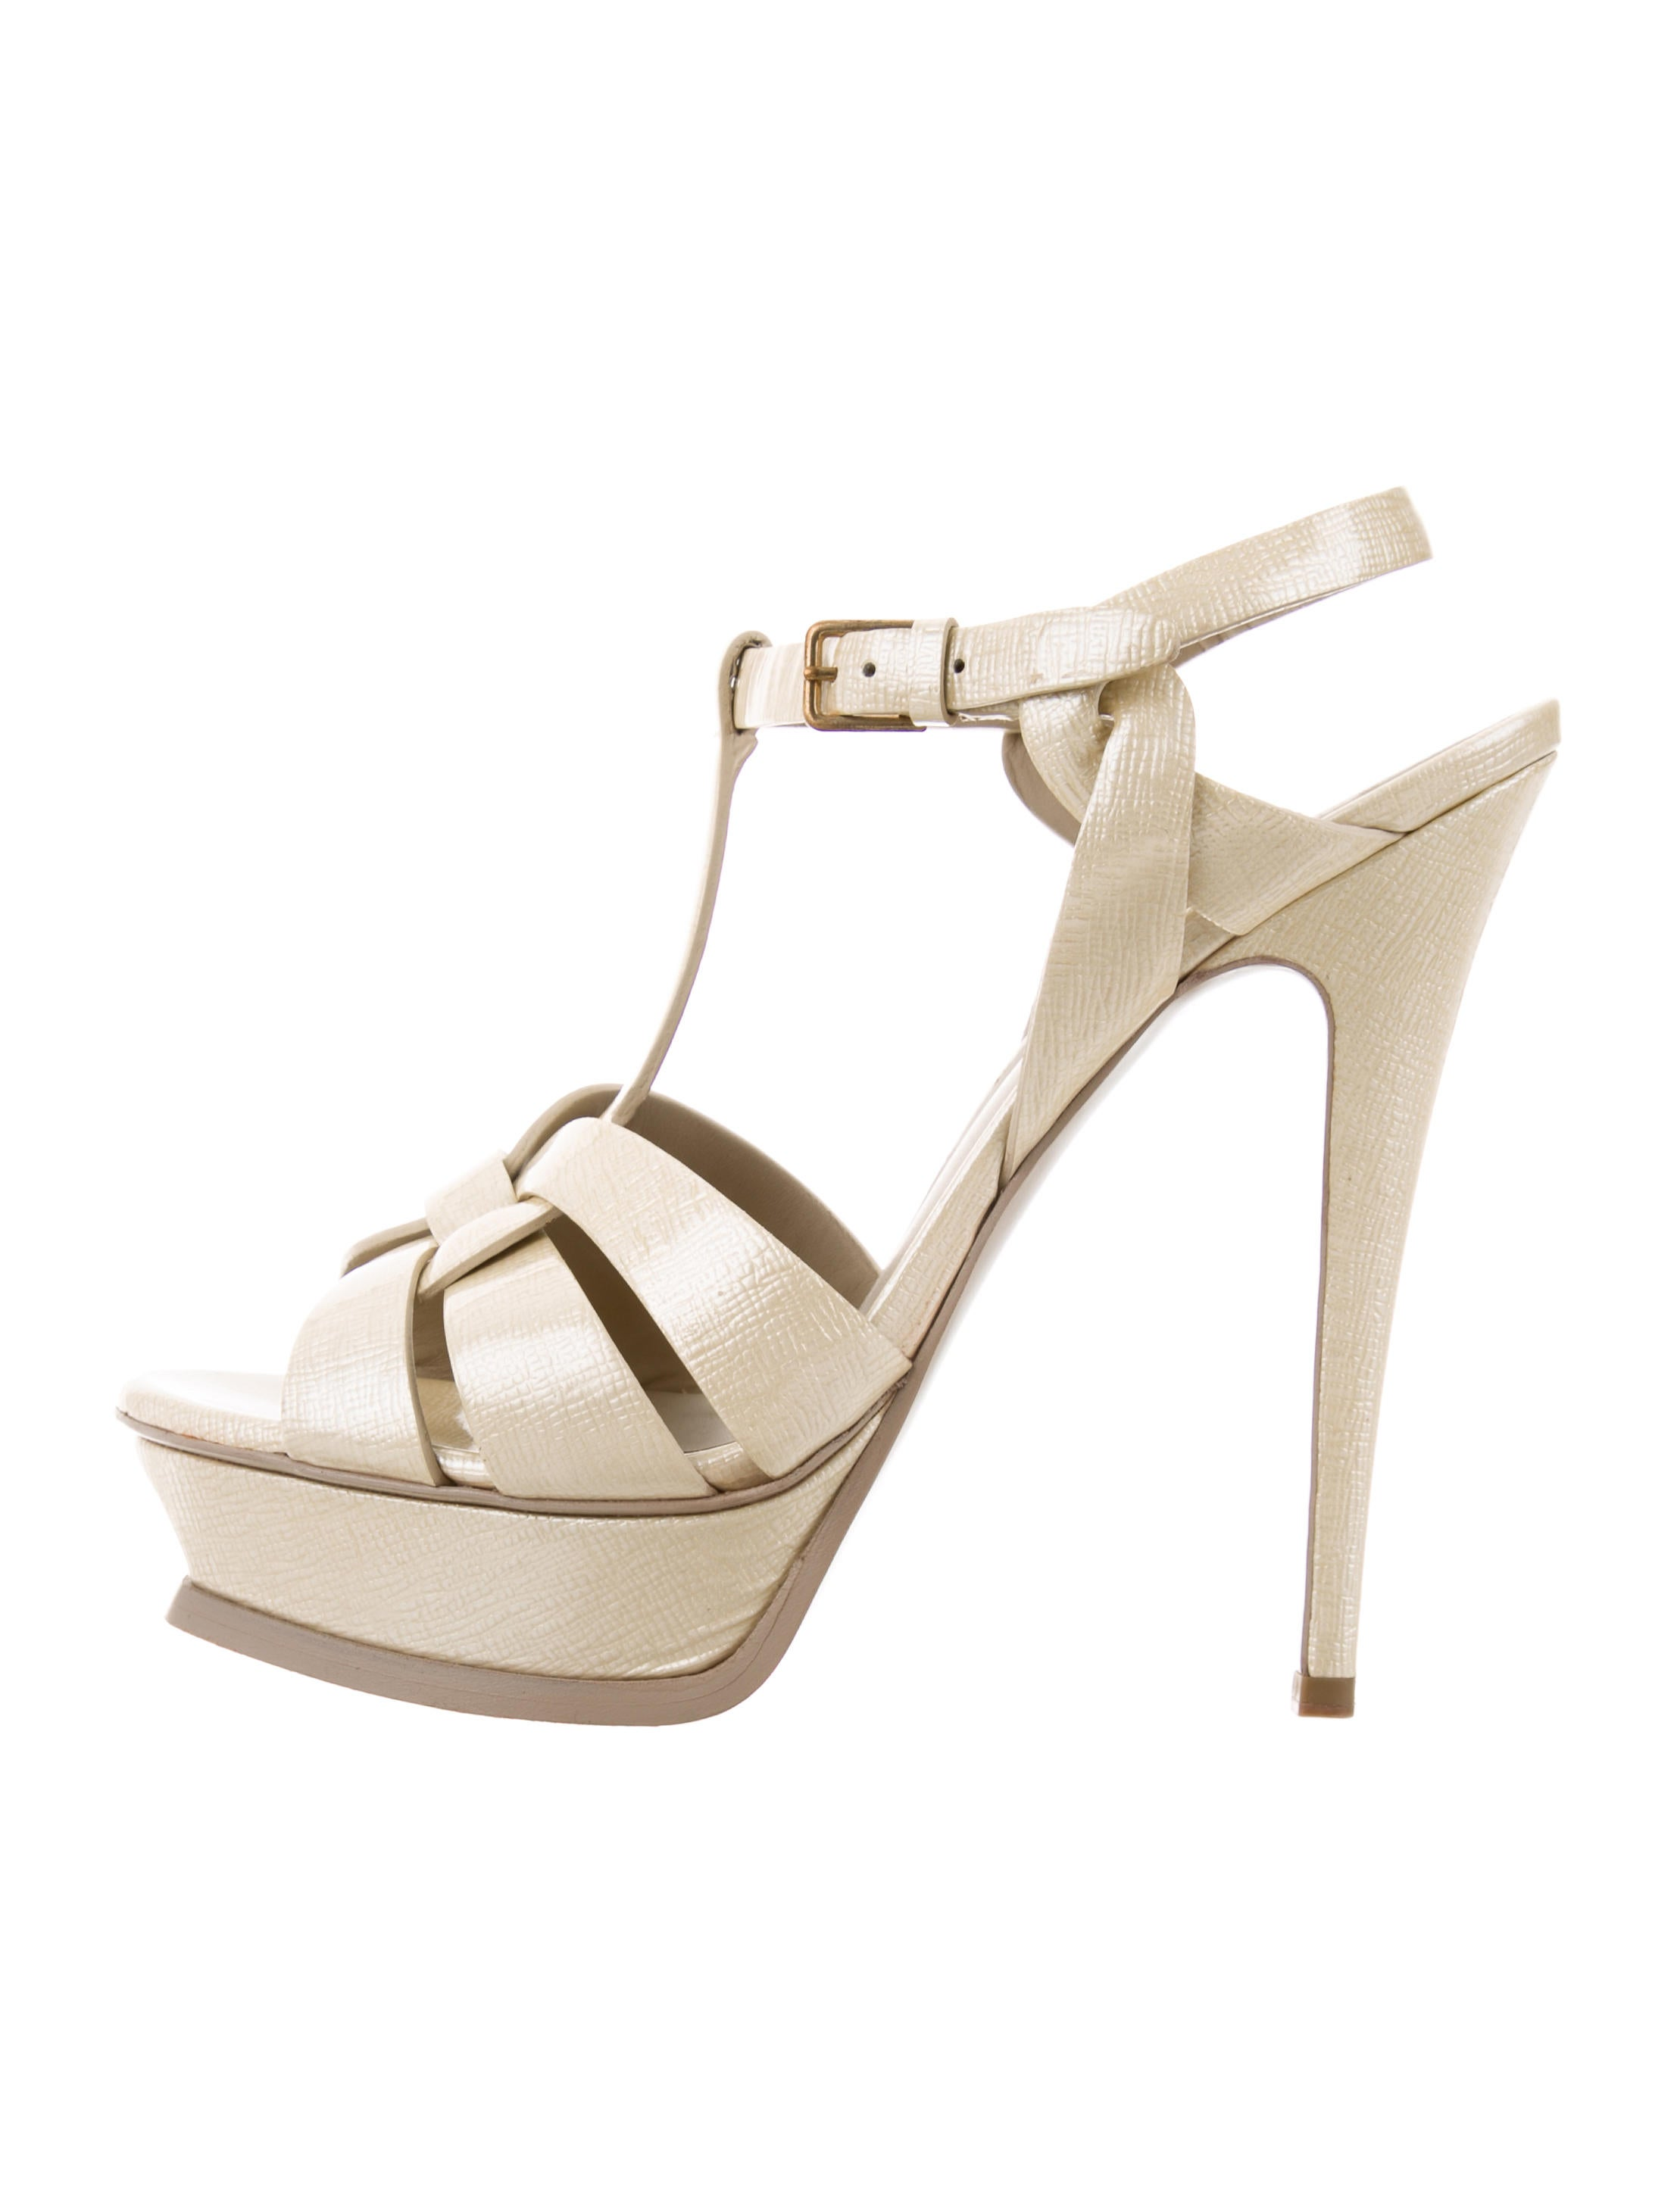 1f29bd17ae8 ... best price yves saint laurent tribute platform sandals. tribute  platform sandals 800a2 4cfb1